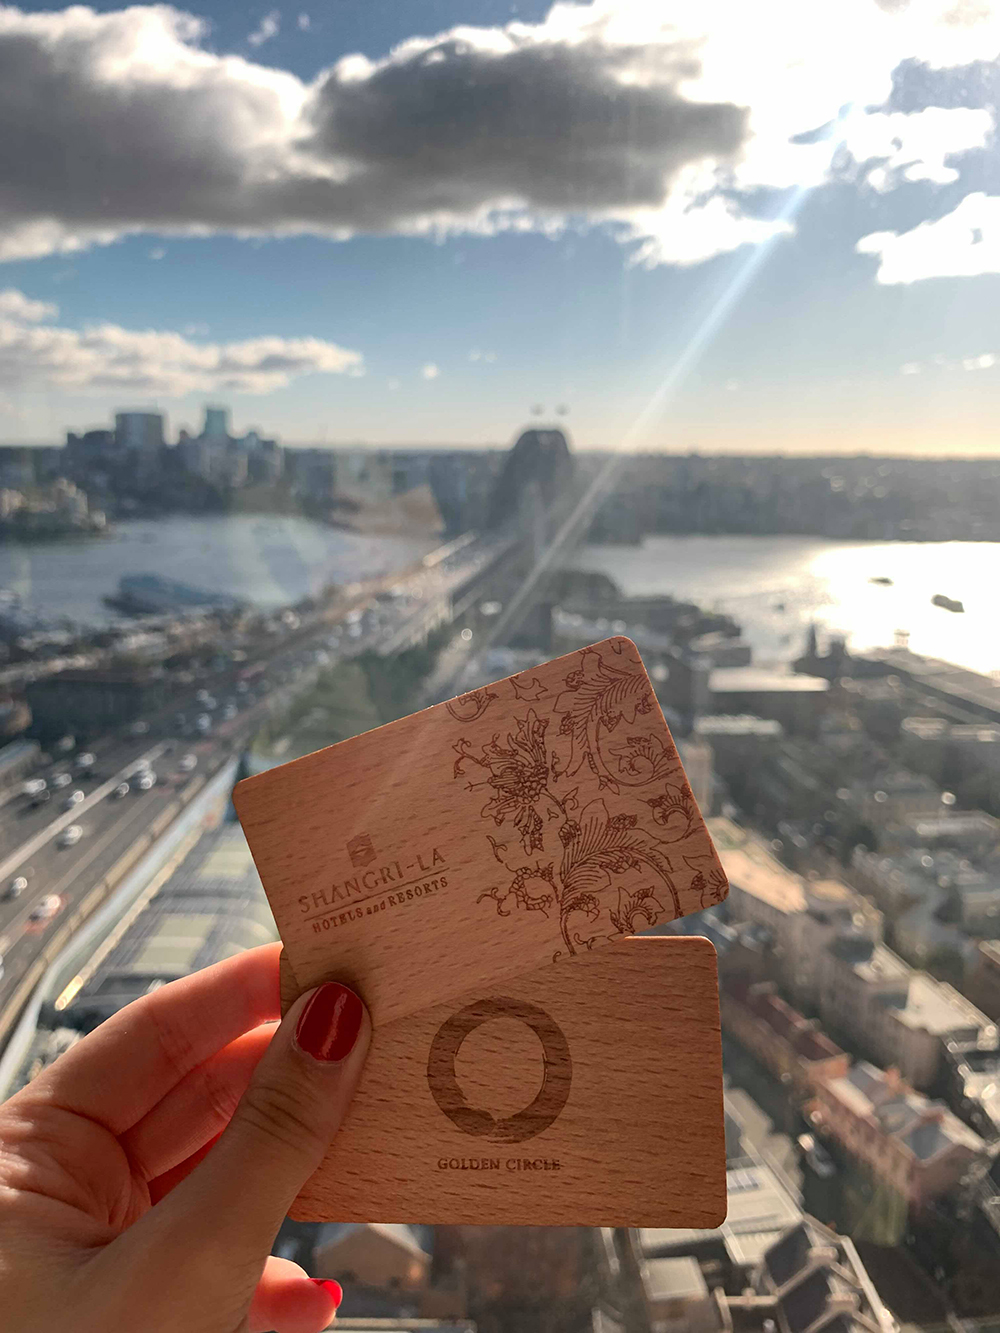 Shangri-La Hotel, Sydney is the first hotel in the city to introduce wooden key cards for all guests.